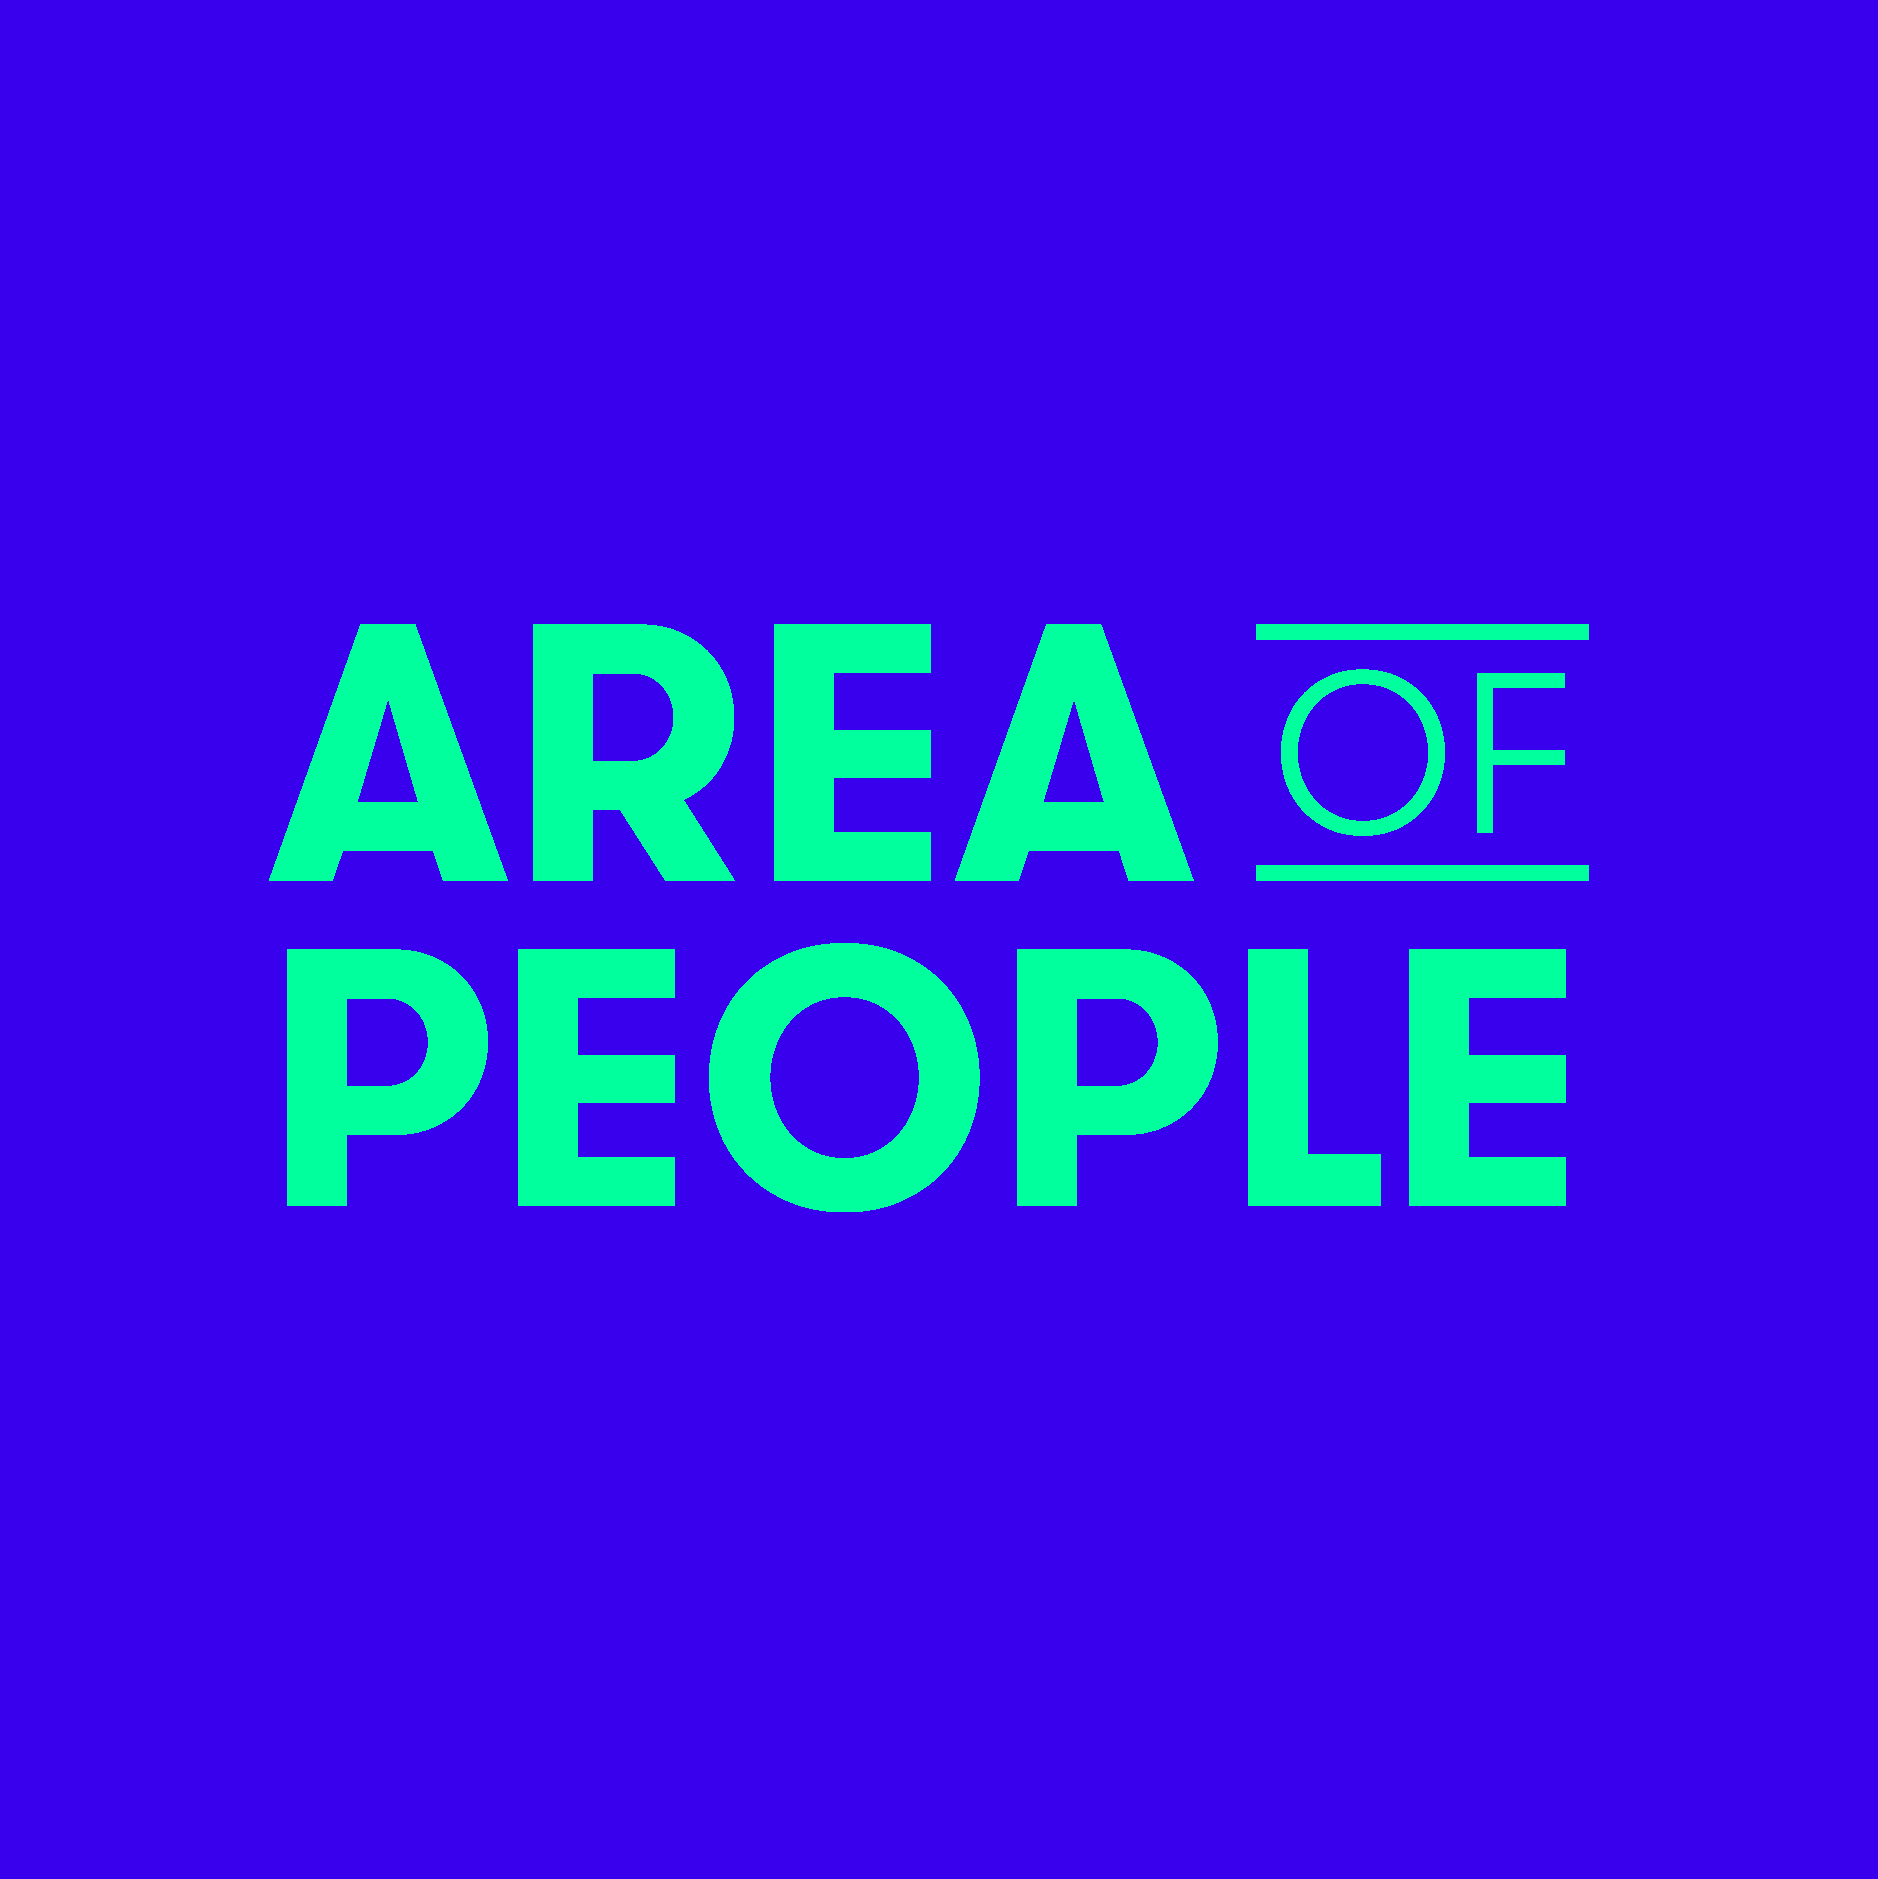 Area of People